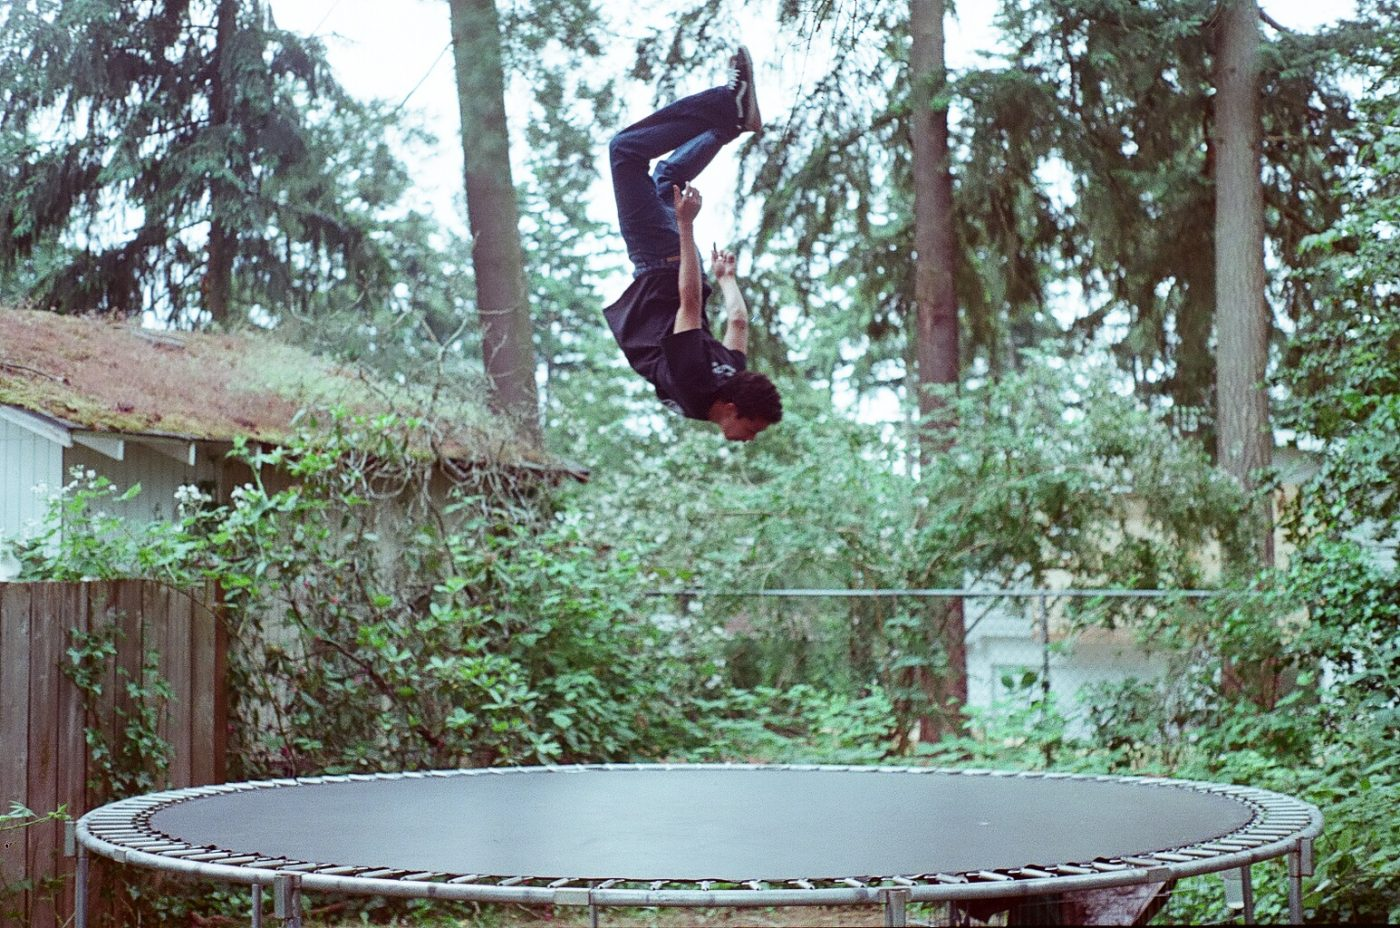 Jamil Nemesio Domingo Owens for Death Before Digital. Kodak Portra 800 + Contax T2